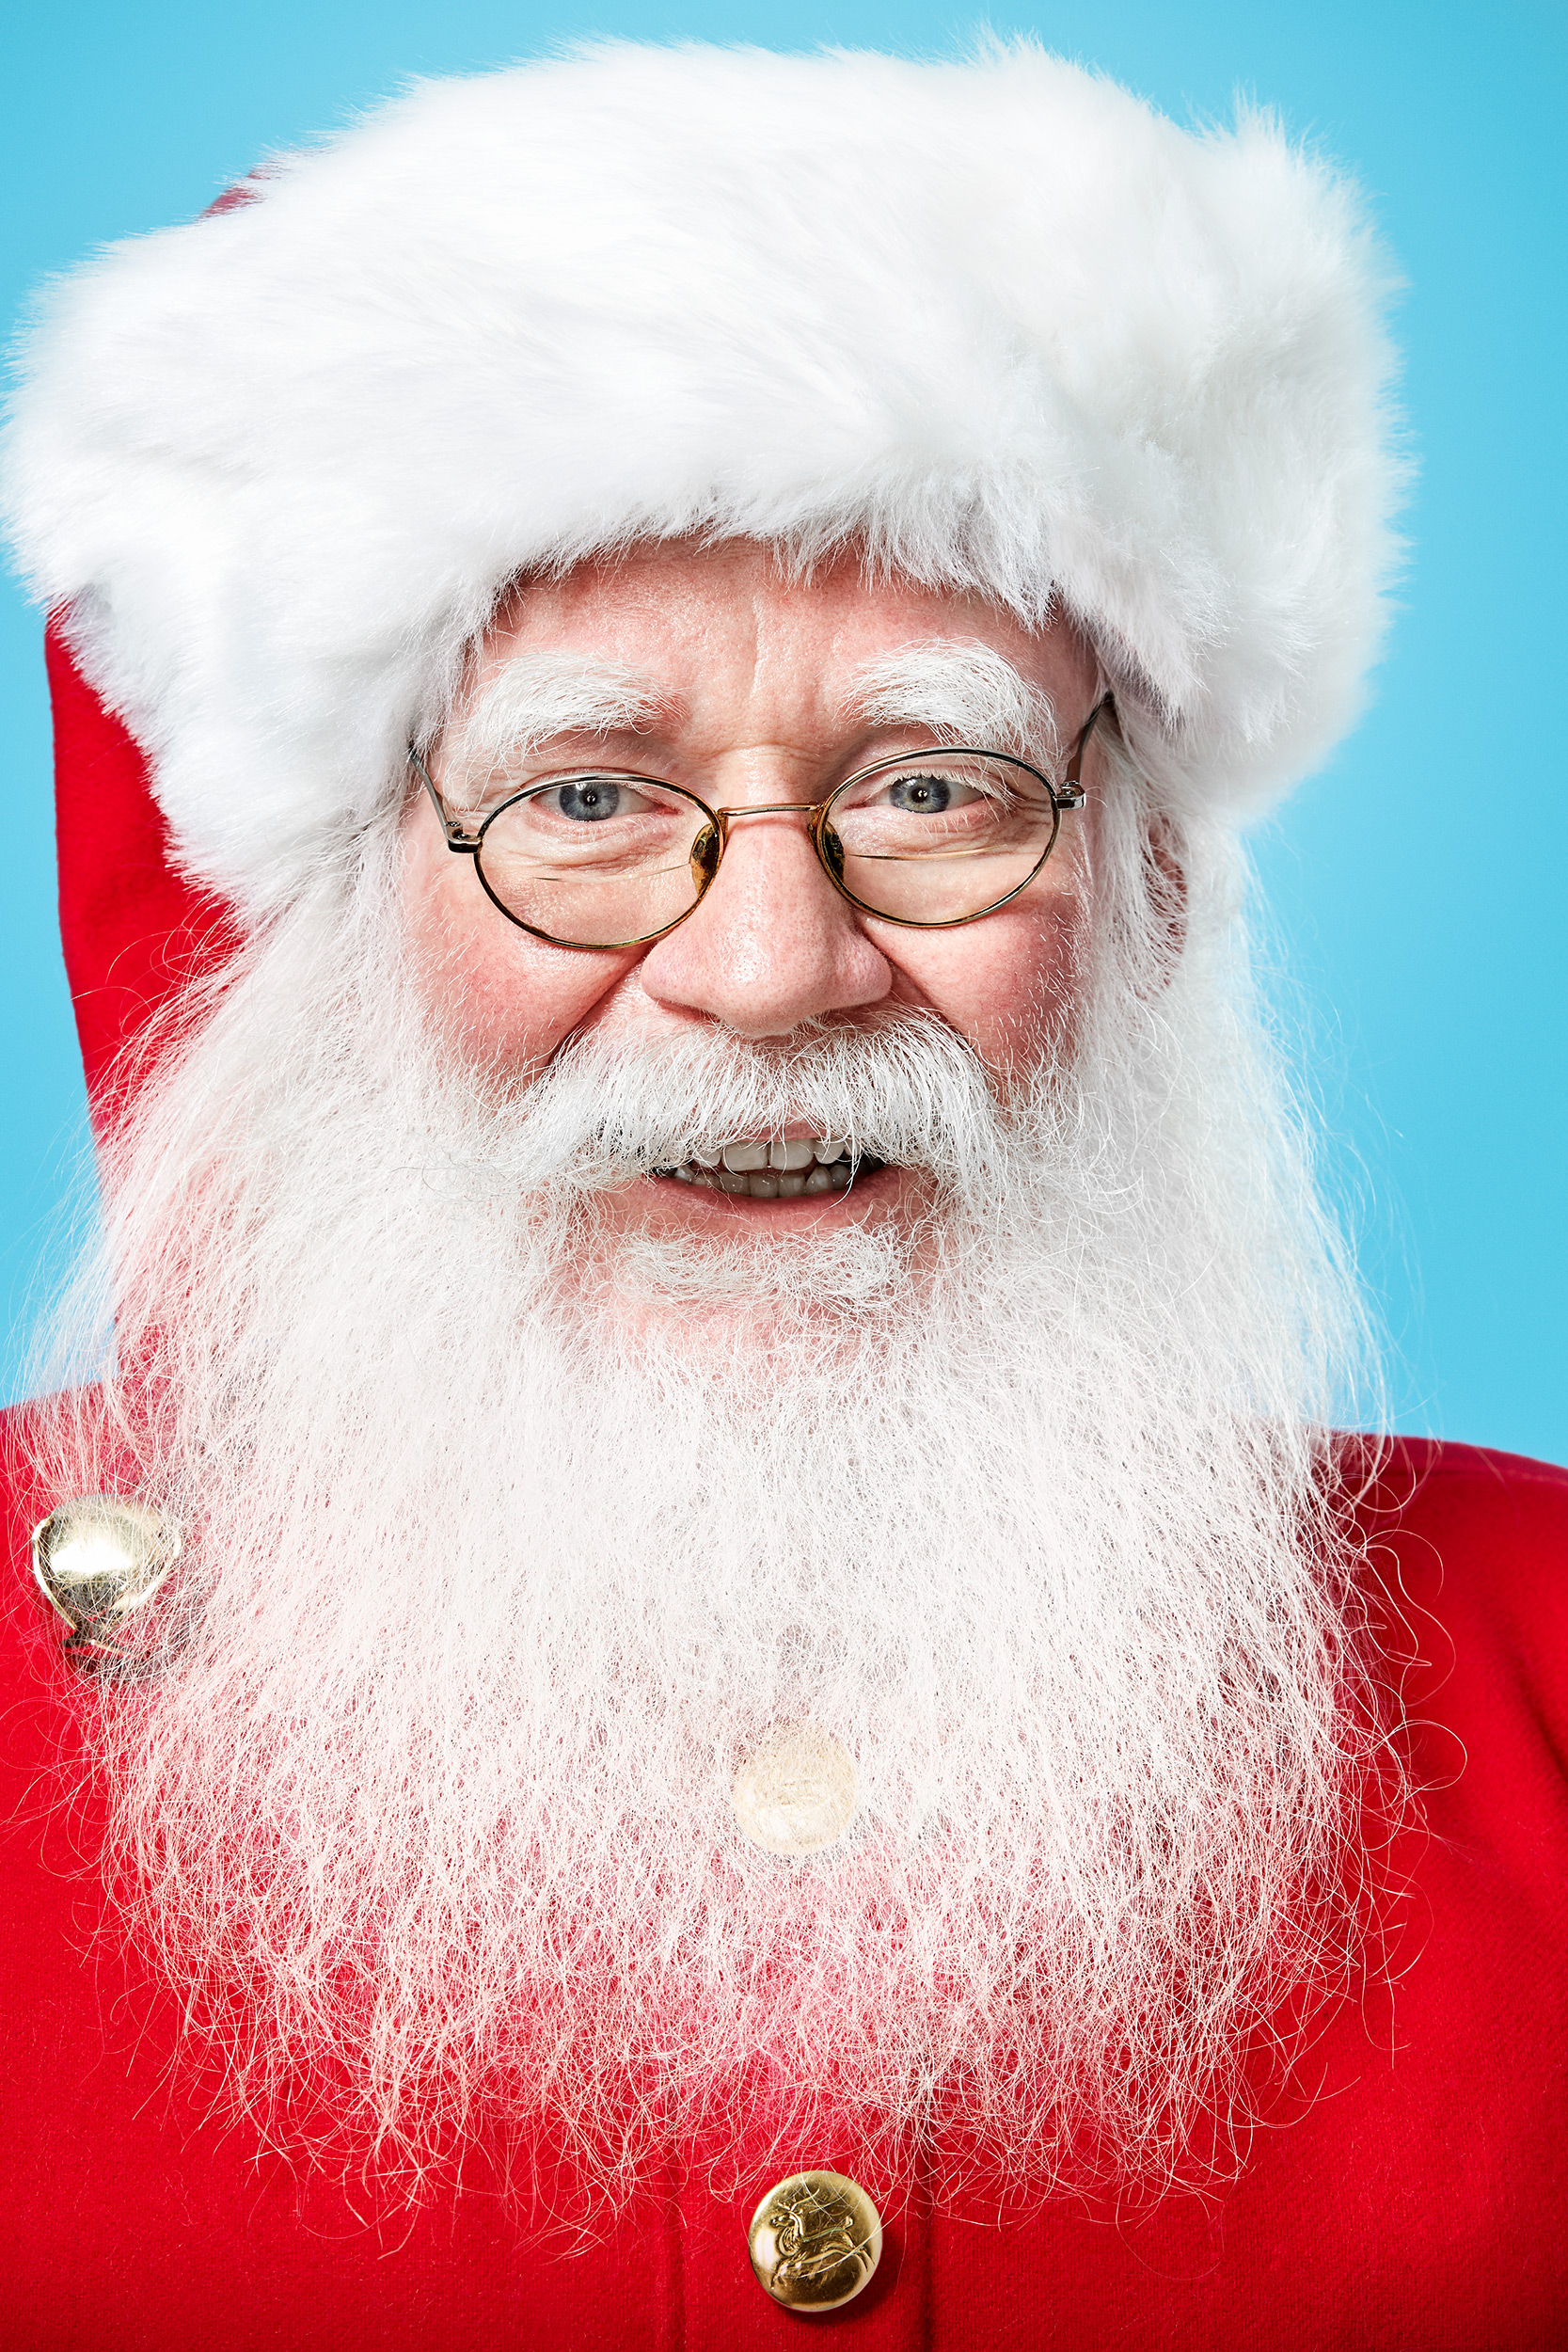 Philly Mag - Santa Clause Santa Paul